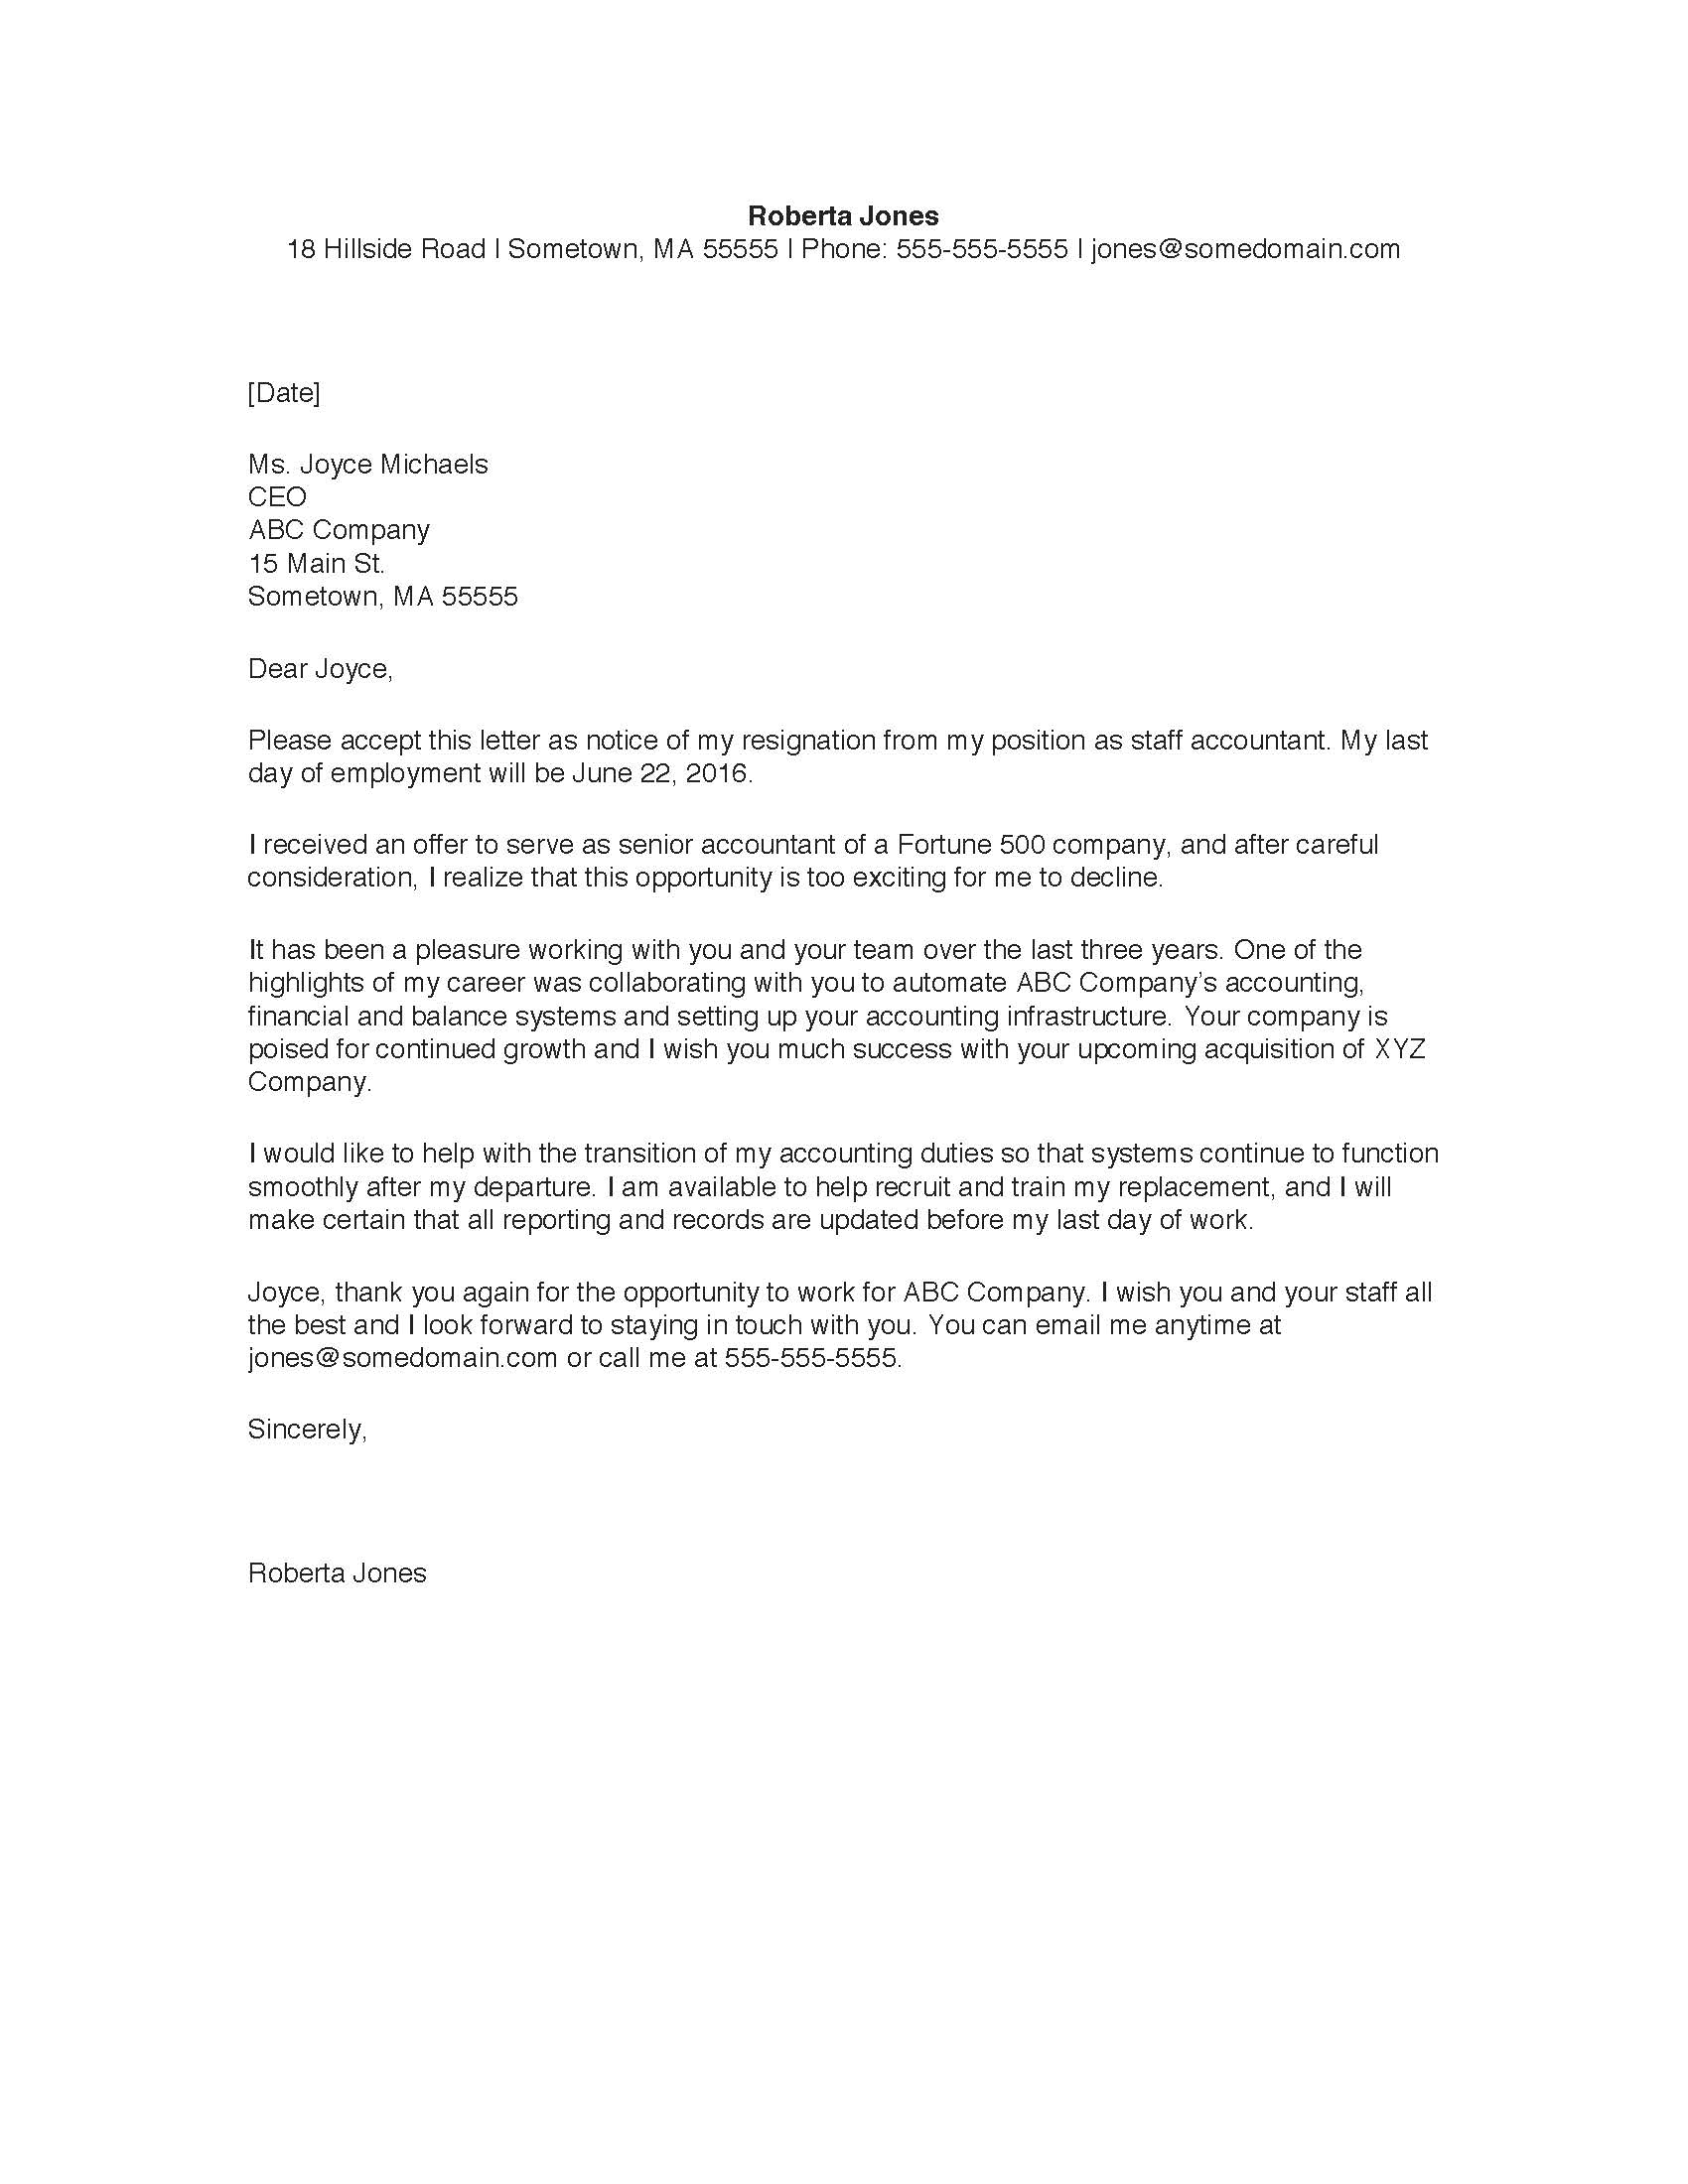 Sample resignation letter monster sample resignation letter expocarfo Choice Image